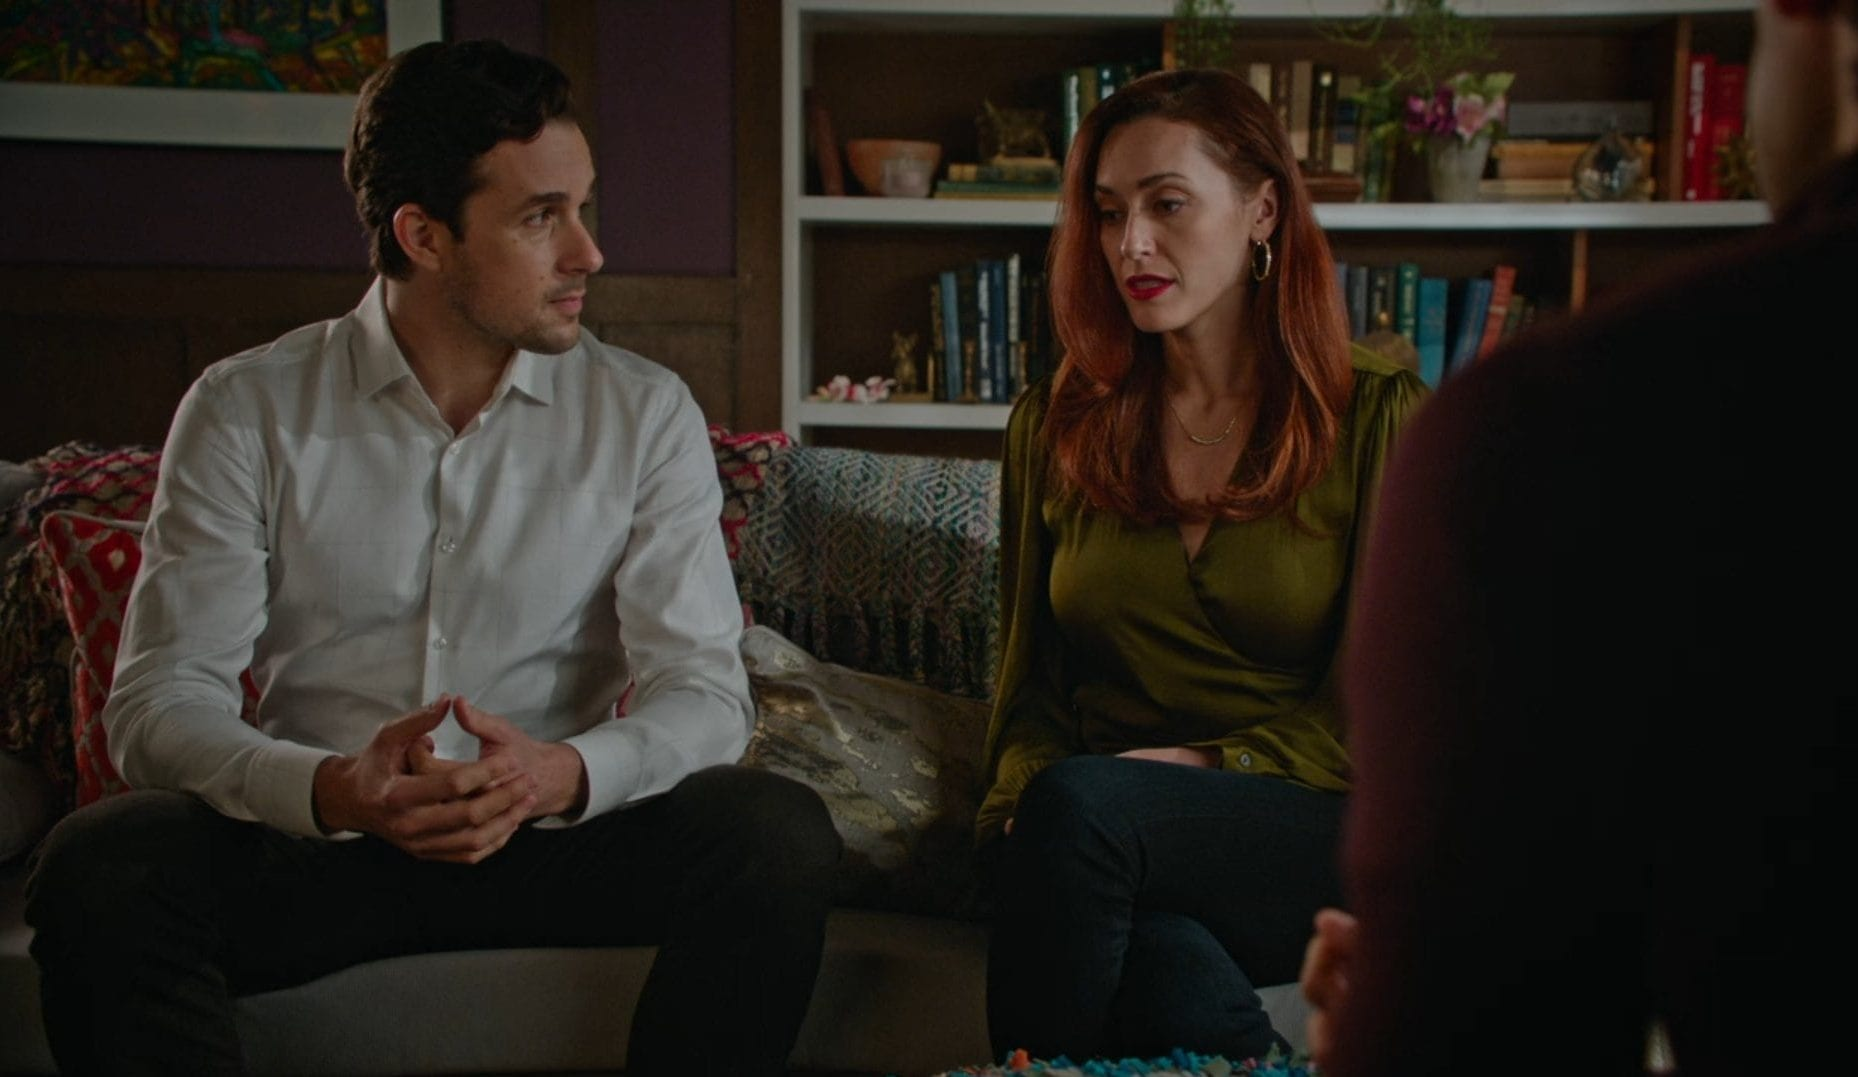 Preview: The Good Witch Season 7 Episode 8